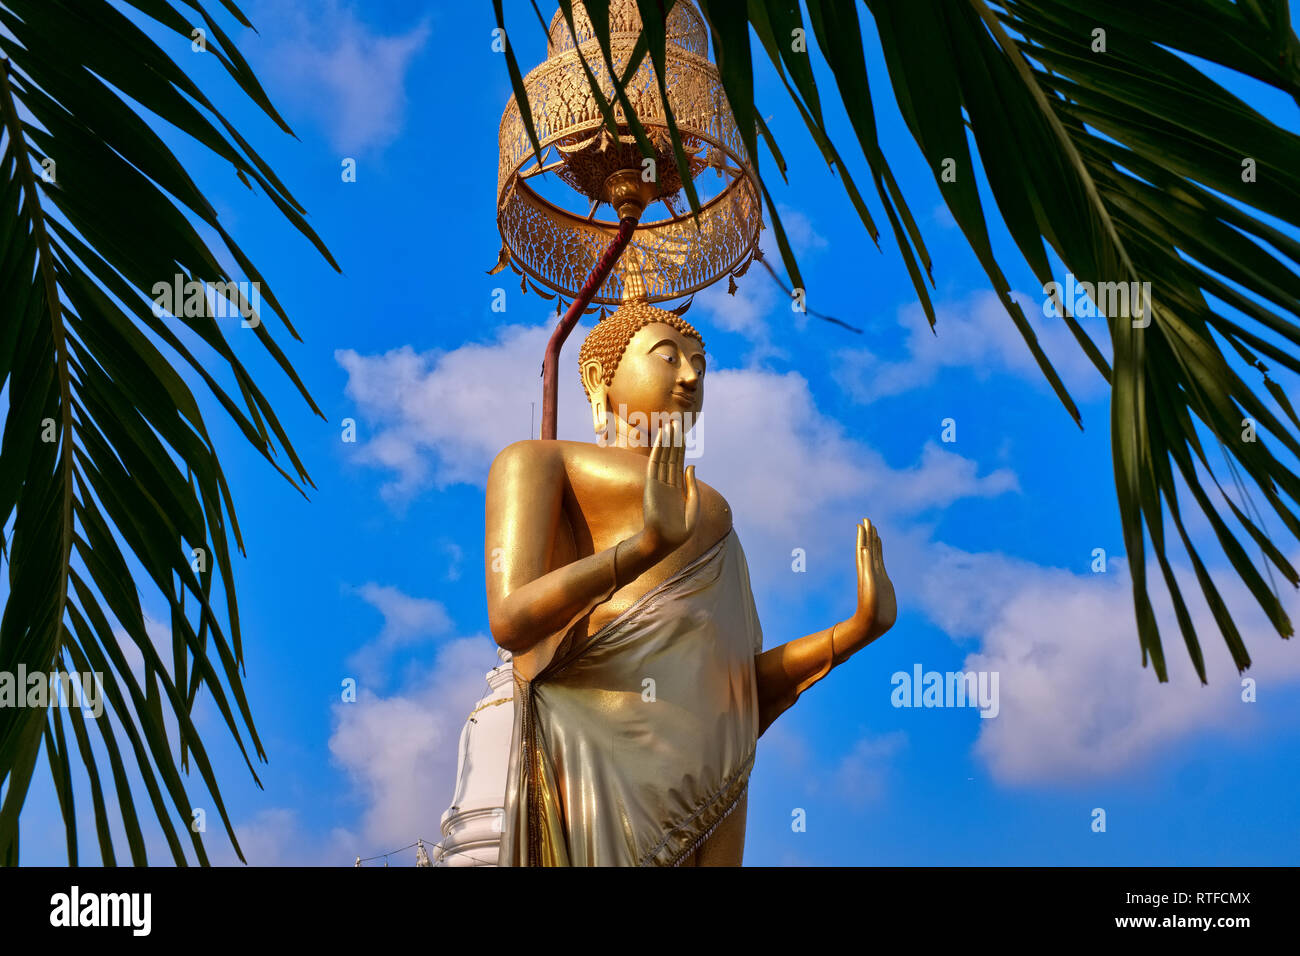 A large standing Buddha in front of Wat Pichaiyat, Thonburi, Bangkok, Thailand, the hands displaying the mudra (posture) of abhaya or fearlessness - Stock Image